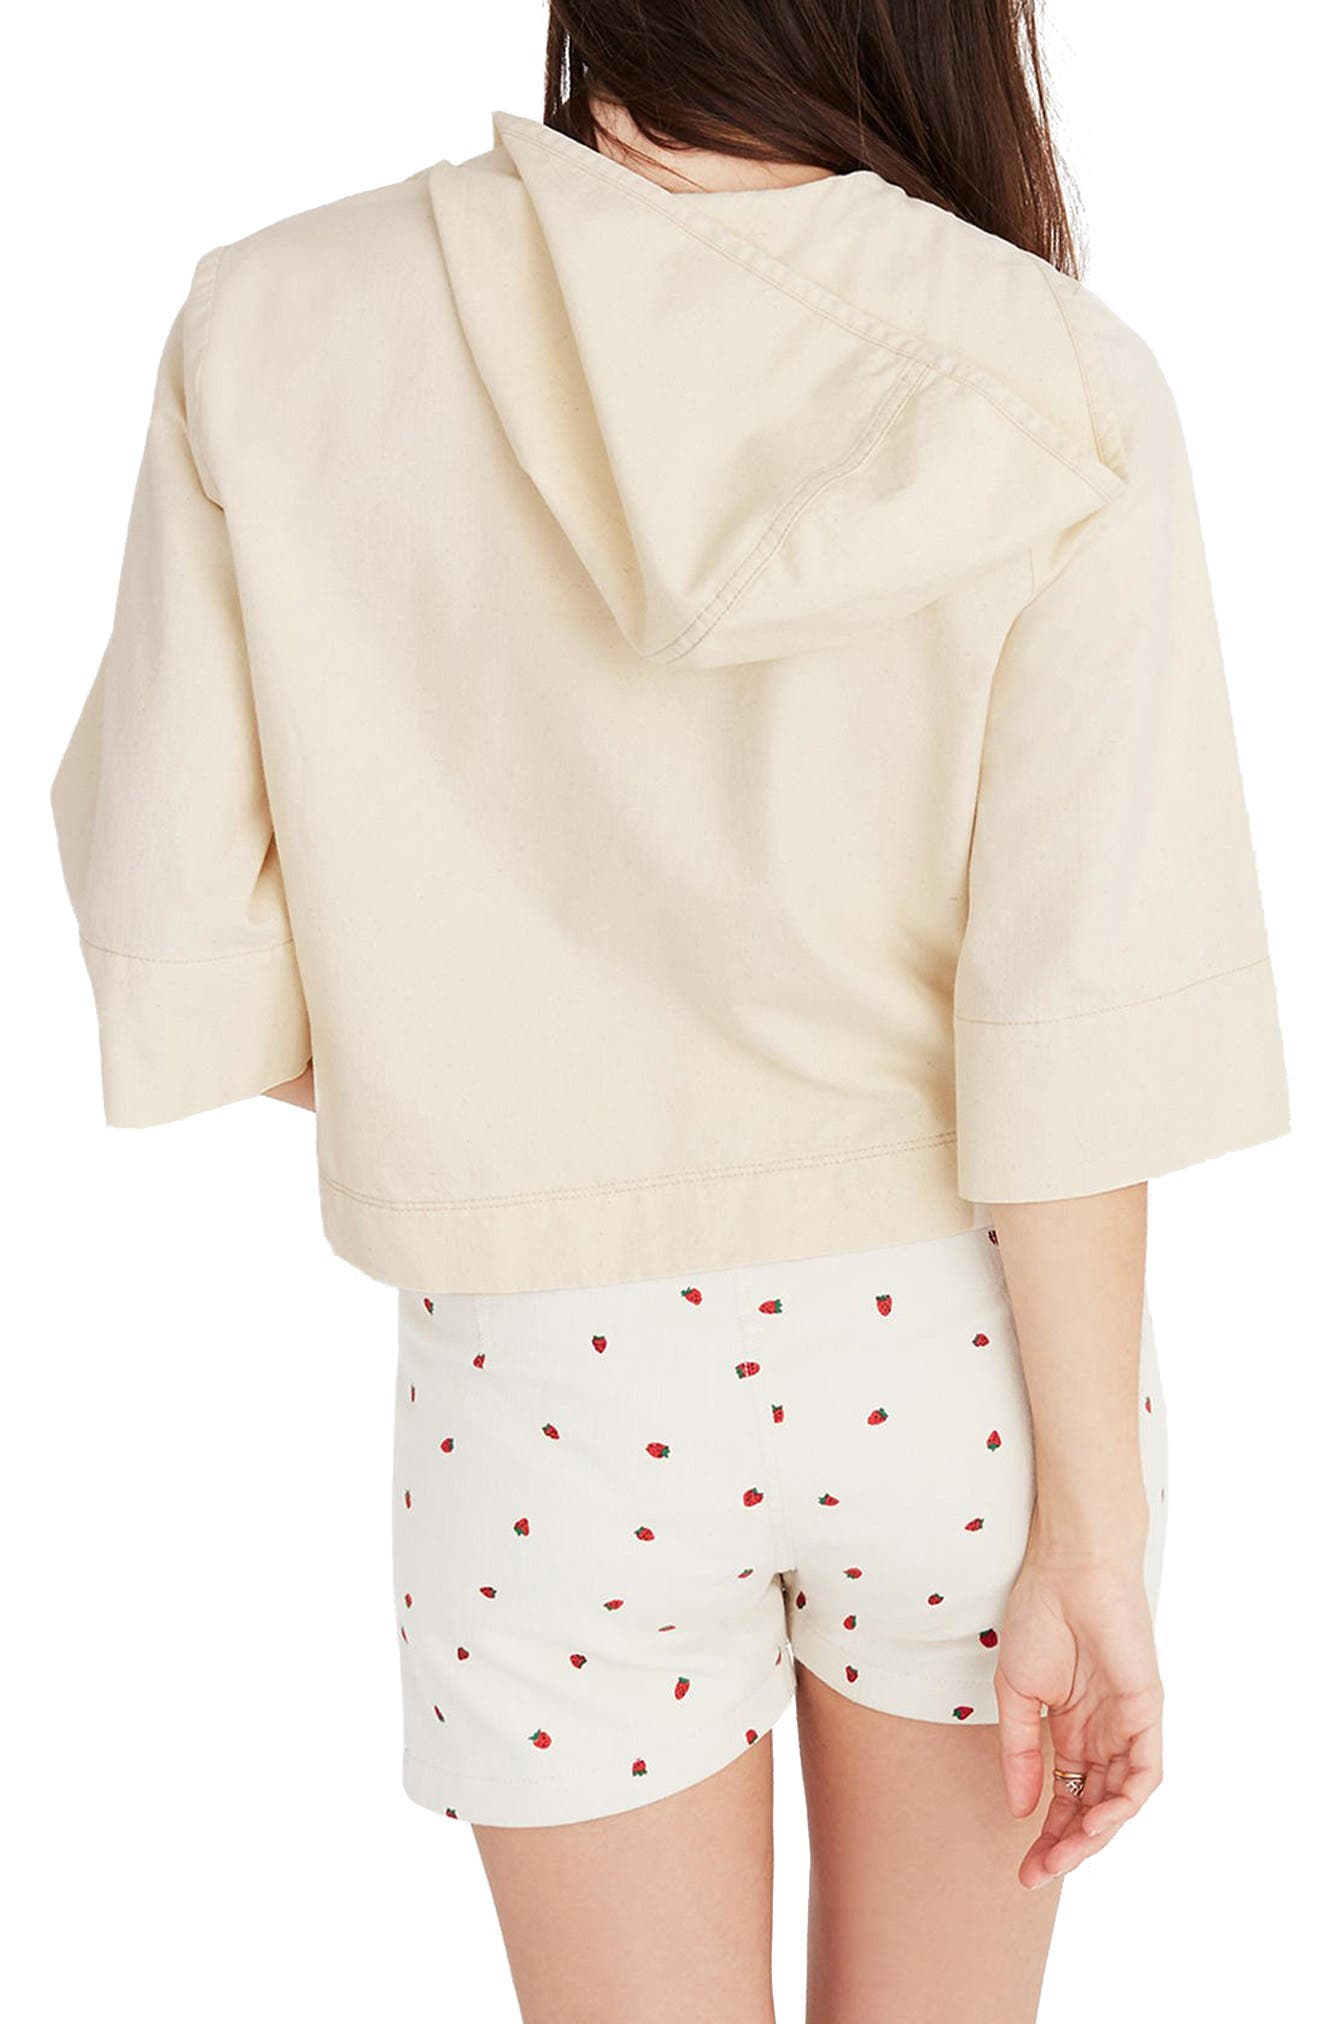 MADEWELL,                             Hooded Popover Top,                             Alternate thumbnail 2, color,                             100